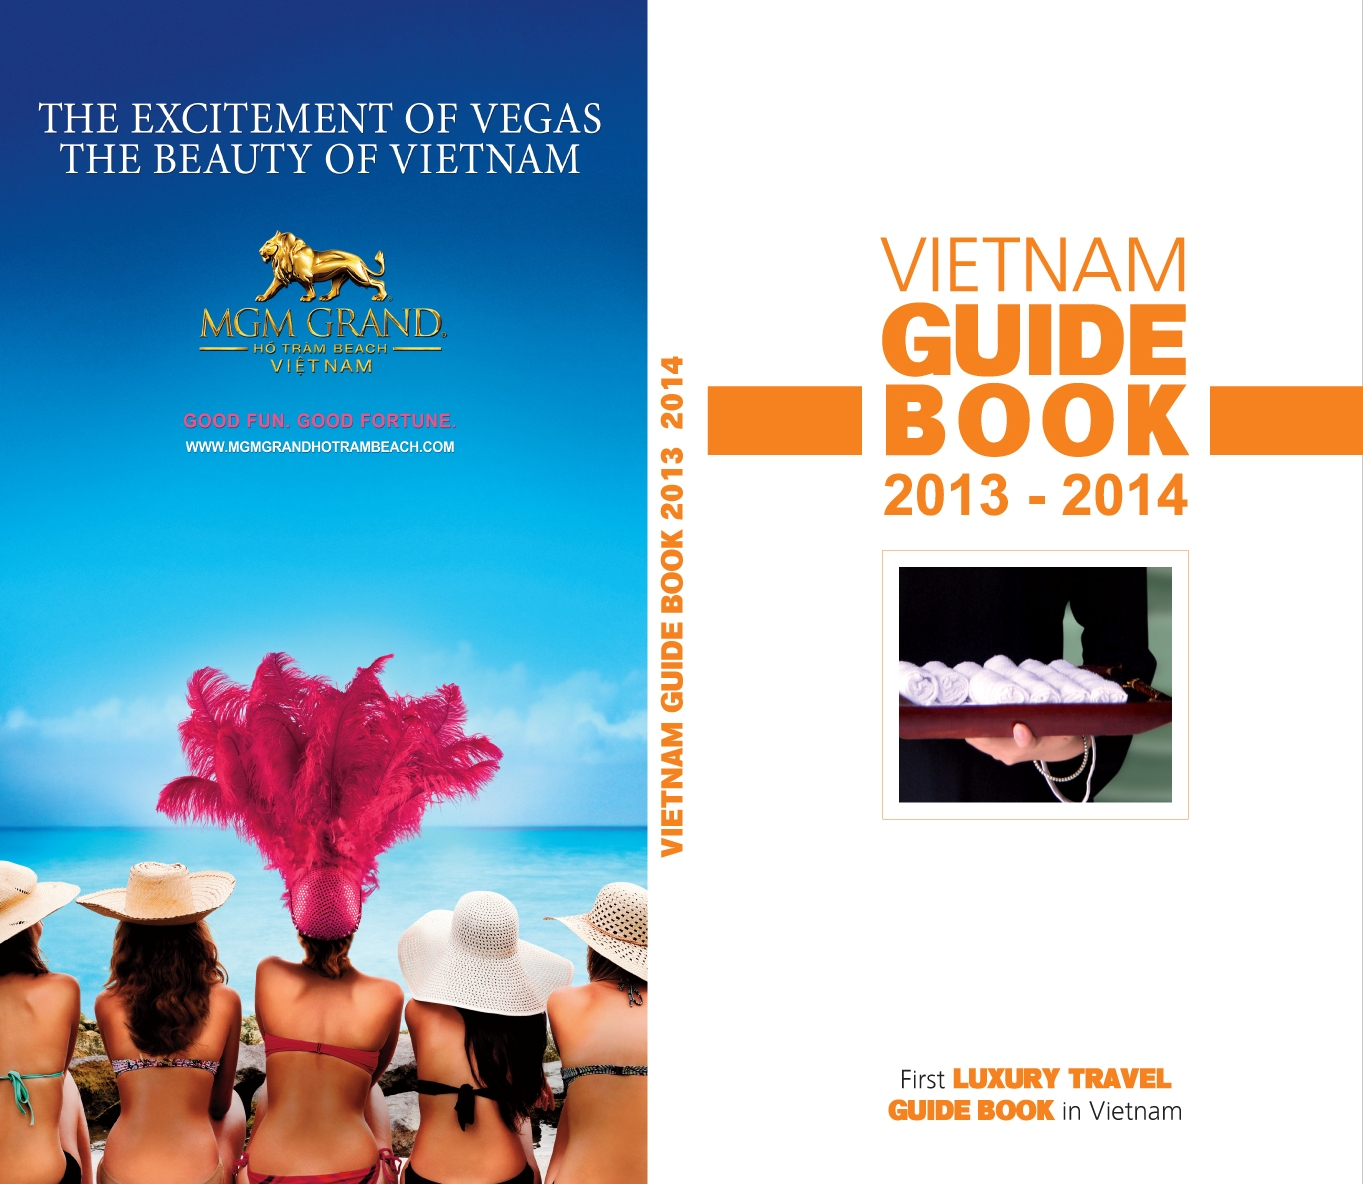 Guide Book: Luxury Travel Ltd. Unveils The Limited Edition Vietnam